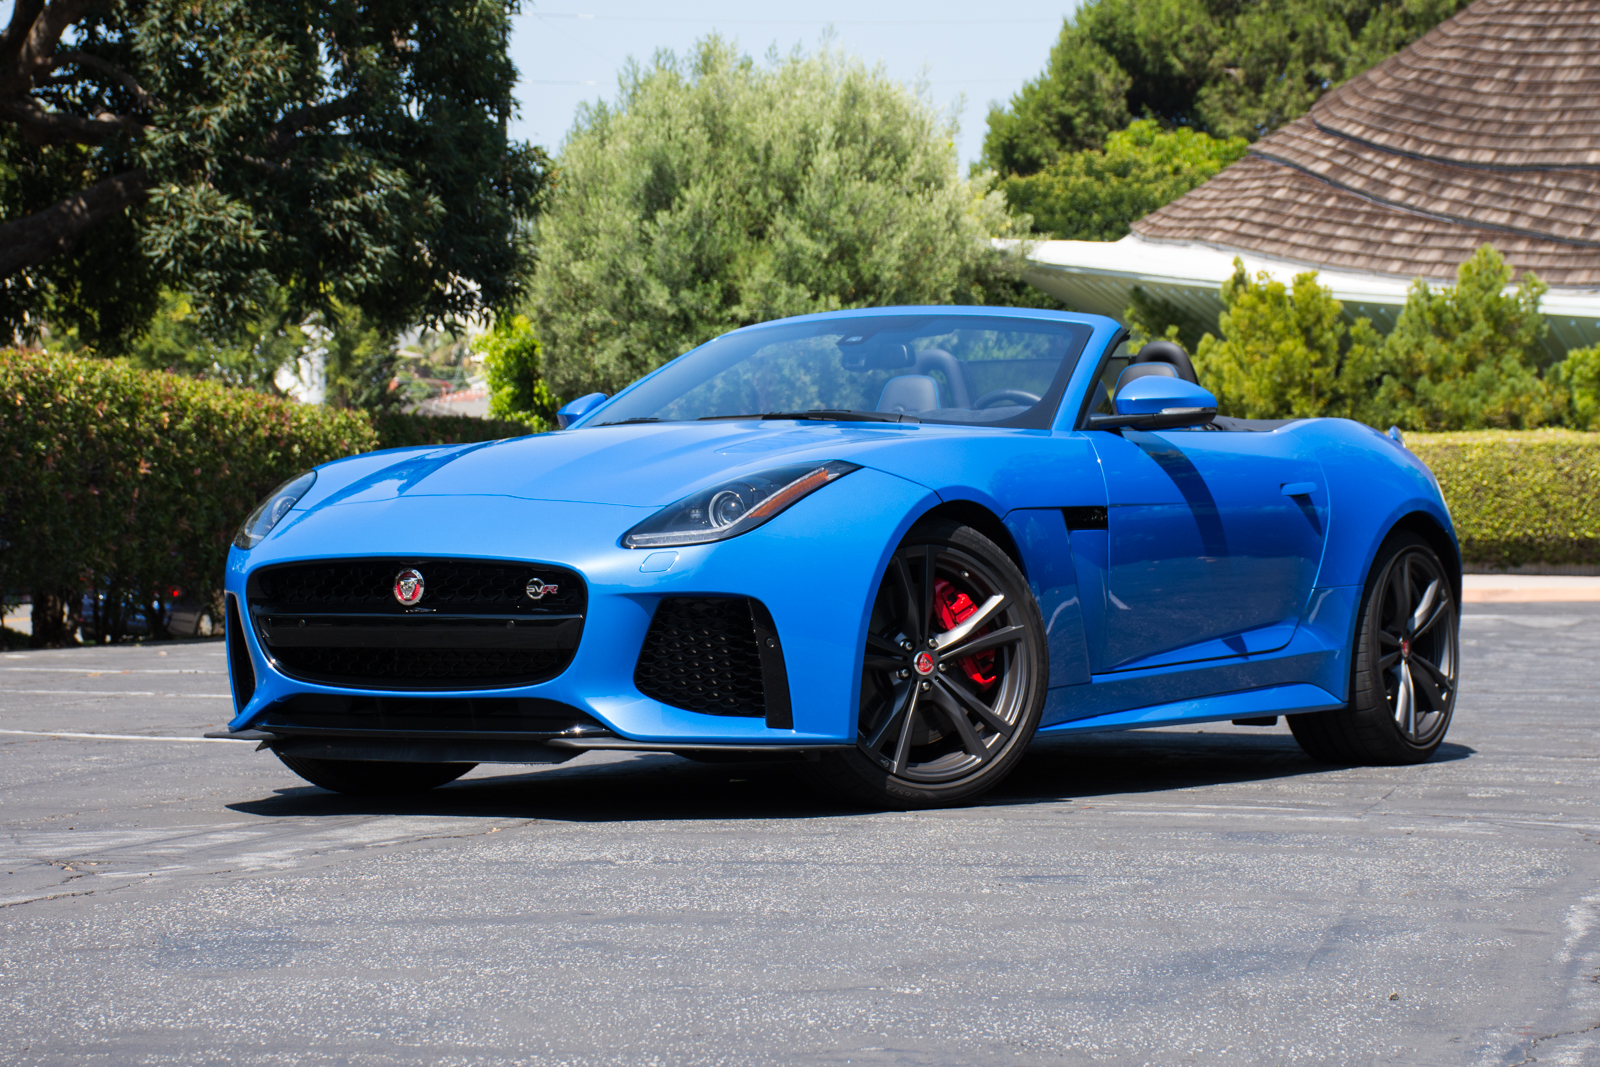 https://i0.wp.com/www.factorytwofour.com/wp-content/uploads/2017/07/2017-Jaguar-F-Type-SVR-Convertible.jpg